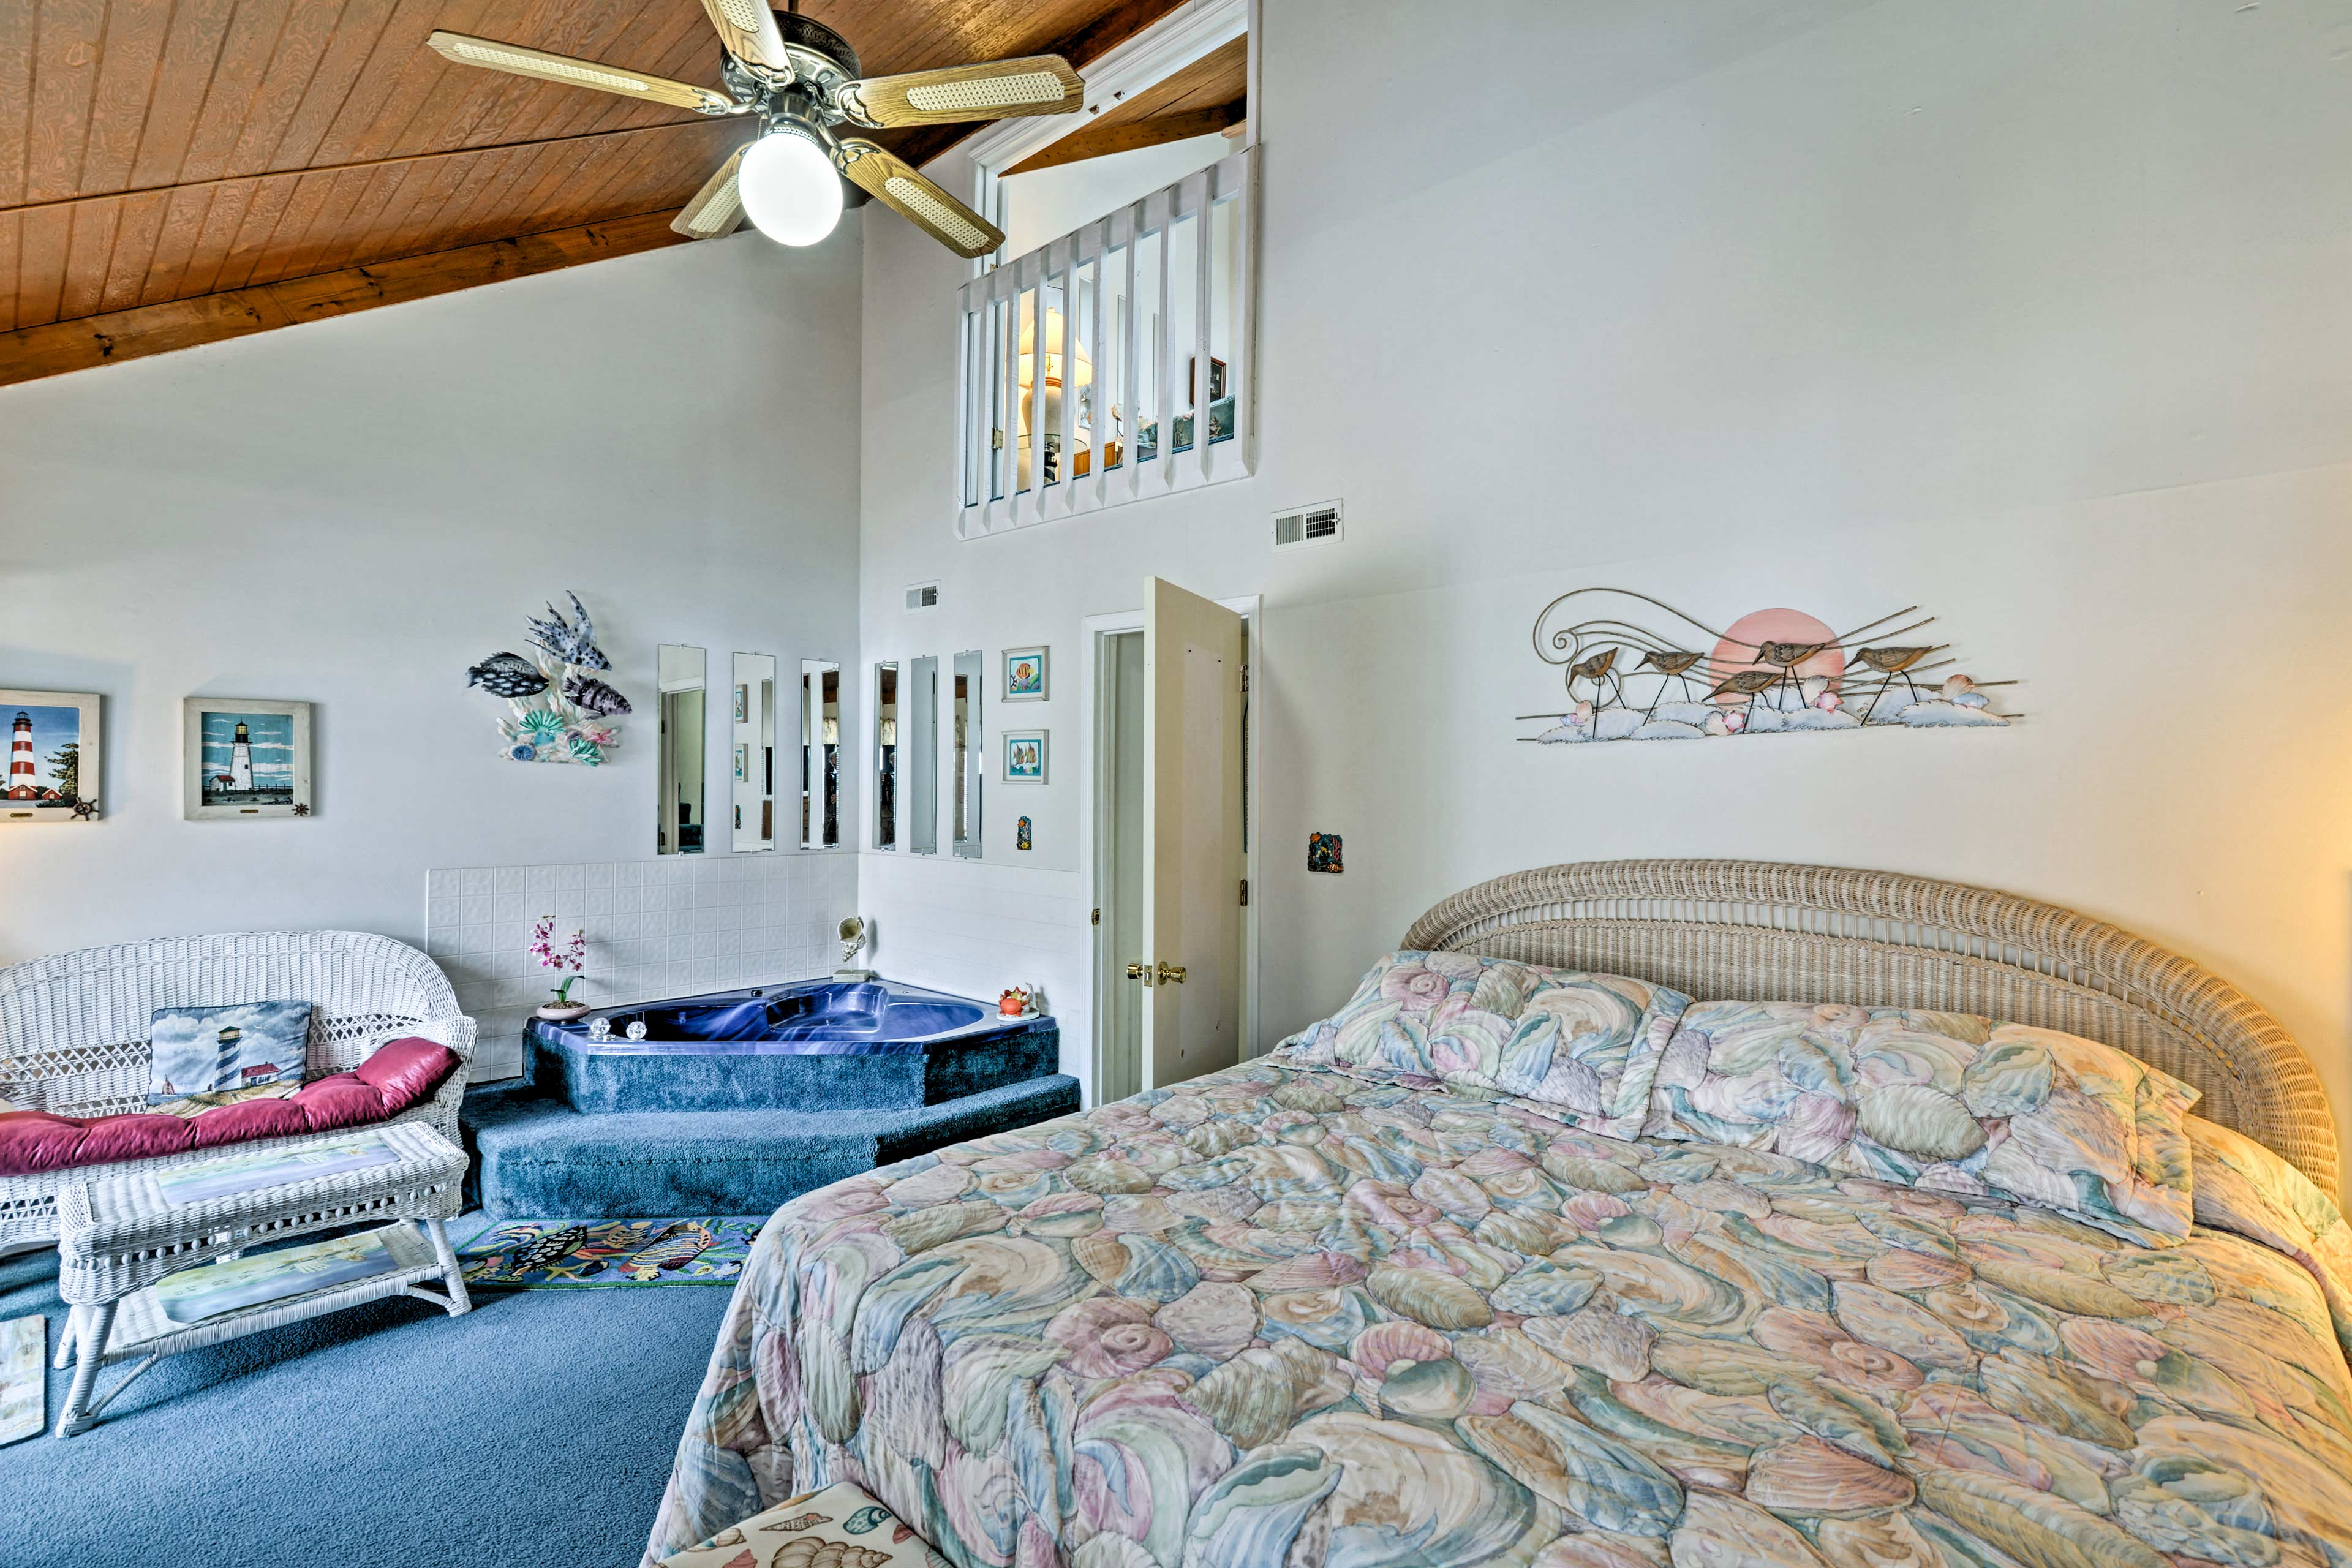 The master bedroom offers a cloud-like king bed.